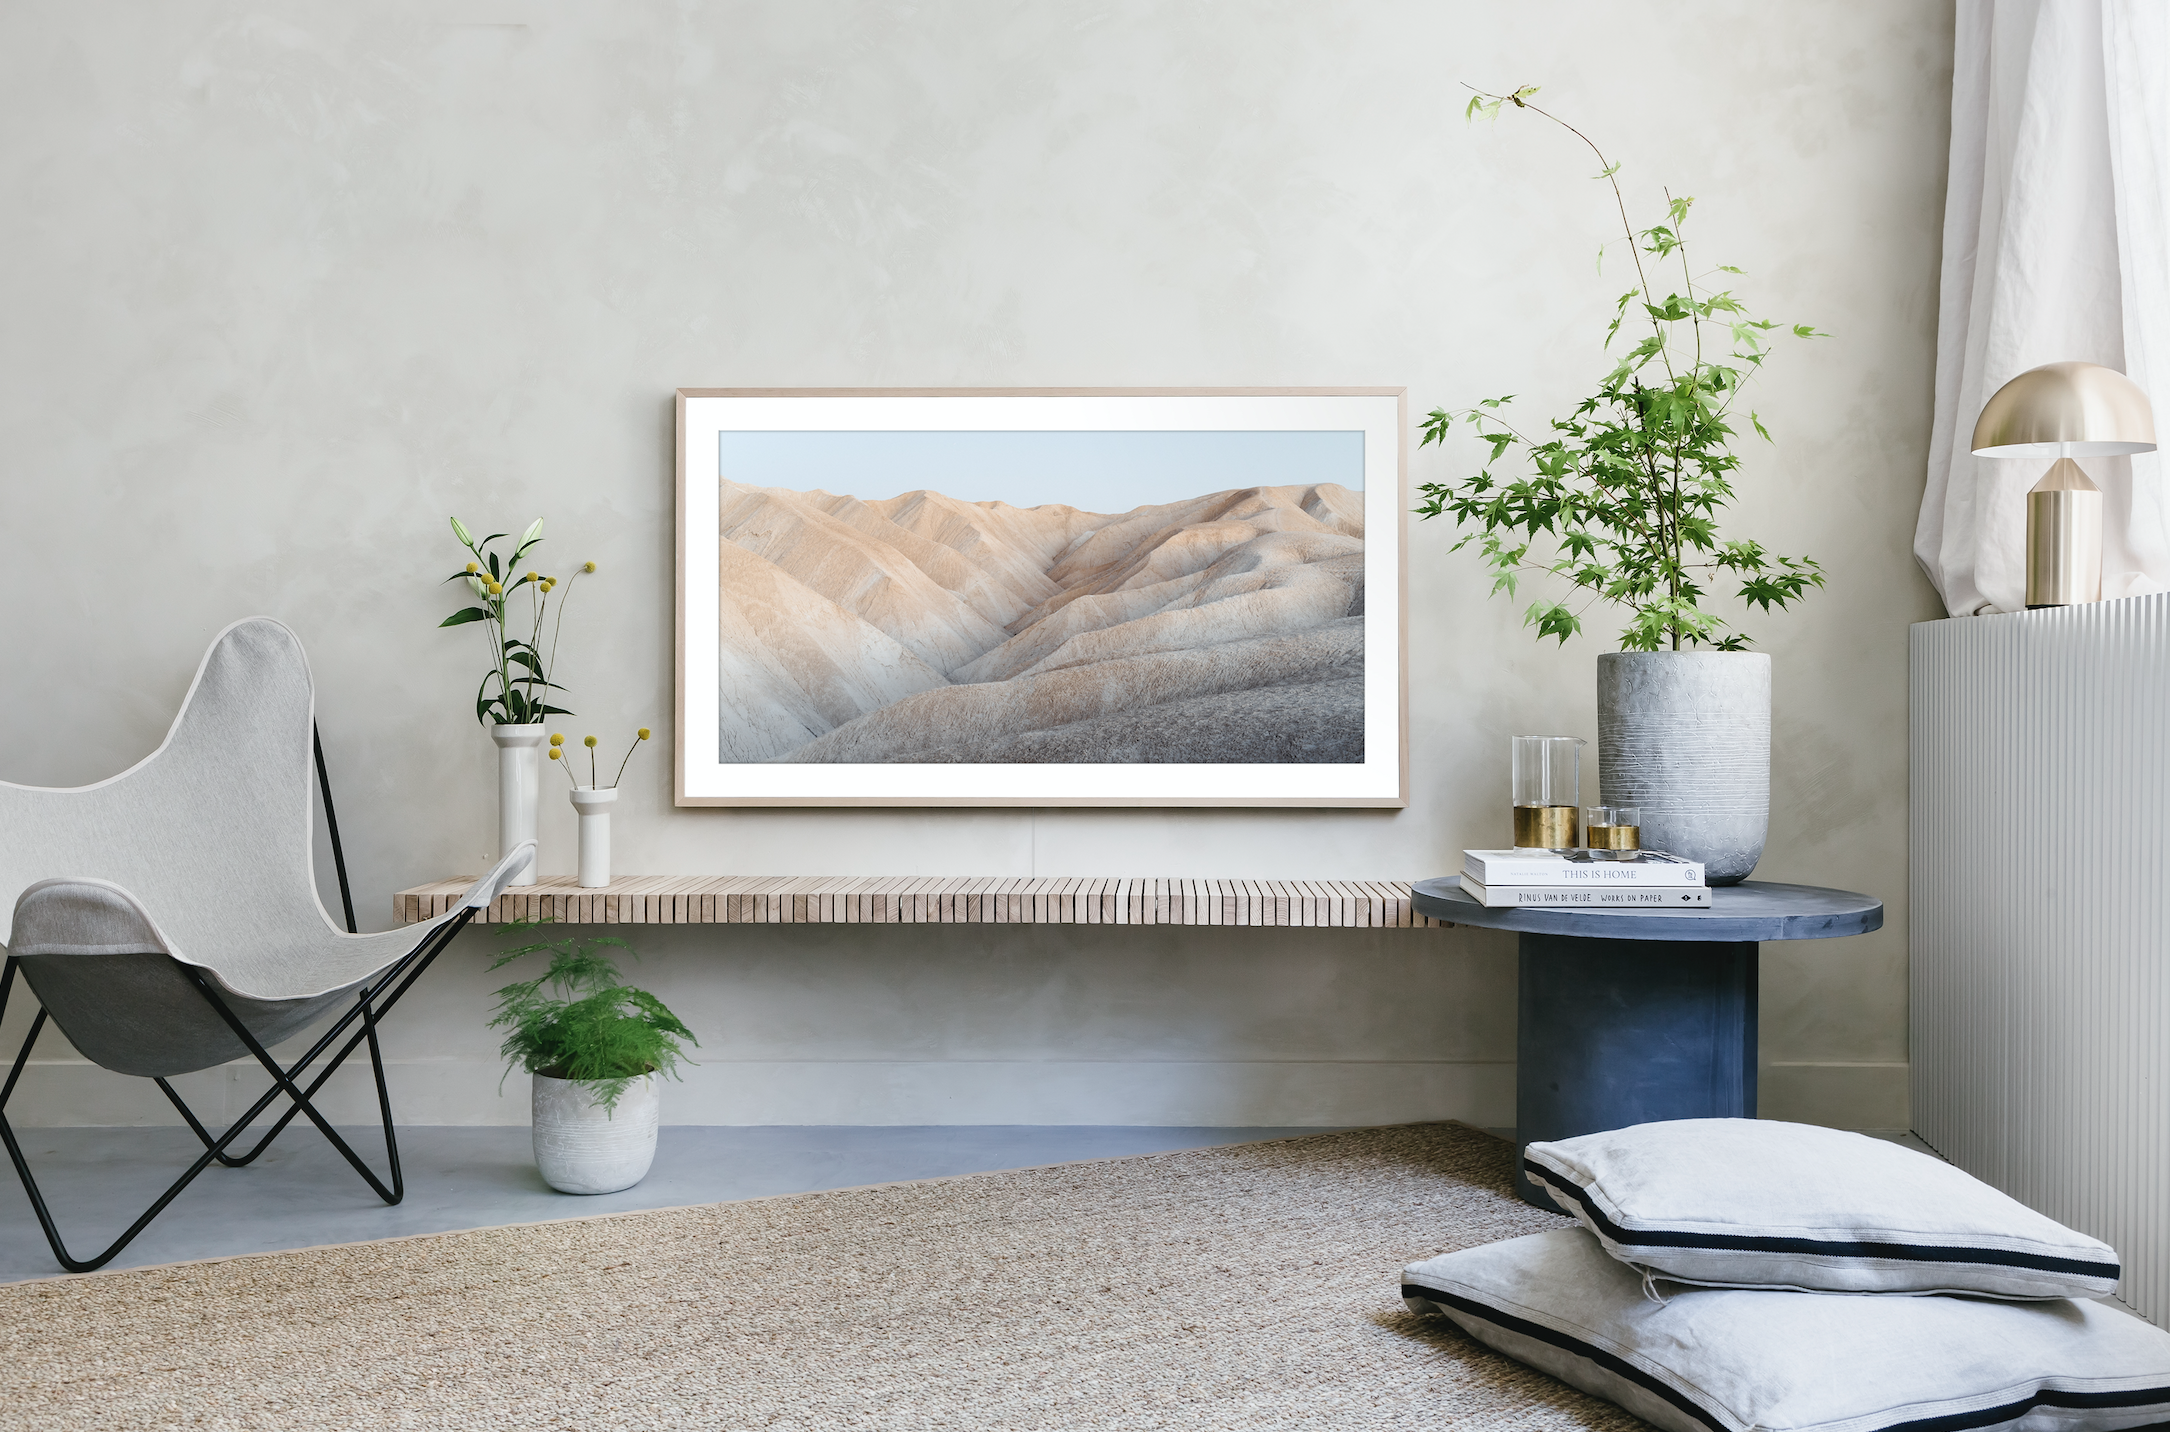 ScherSamsung The Frame Tv 2019 2019-07-04 om 14.59.27